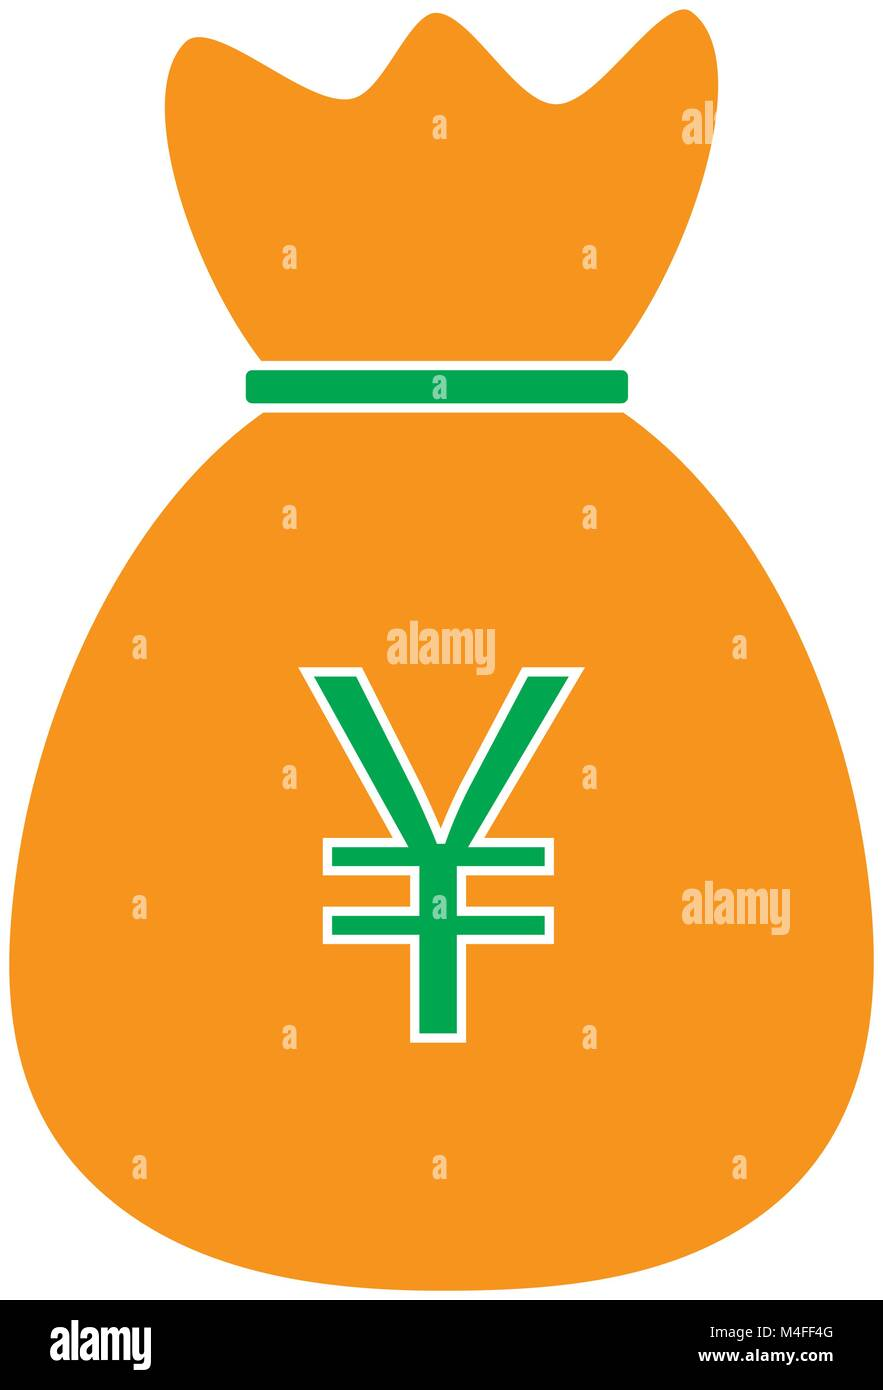 Yen yuan or renminbi currency icon or logo vector over a money yen yuan or renminbi currency icon or logo vector over a money bag symbol for japanese or chinese bank banking or japan and china finances biocorpaavc Choice Image